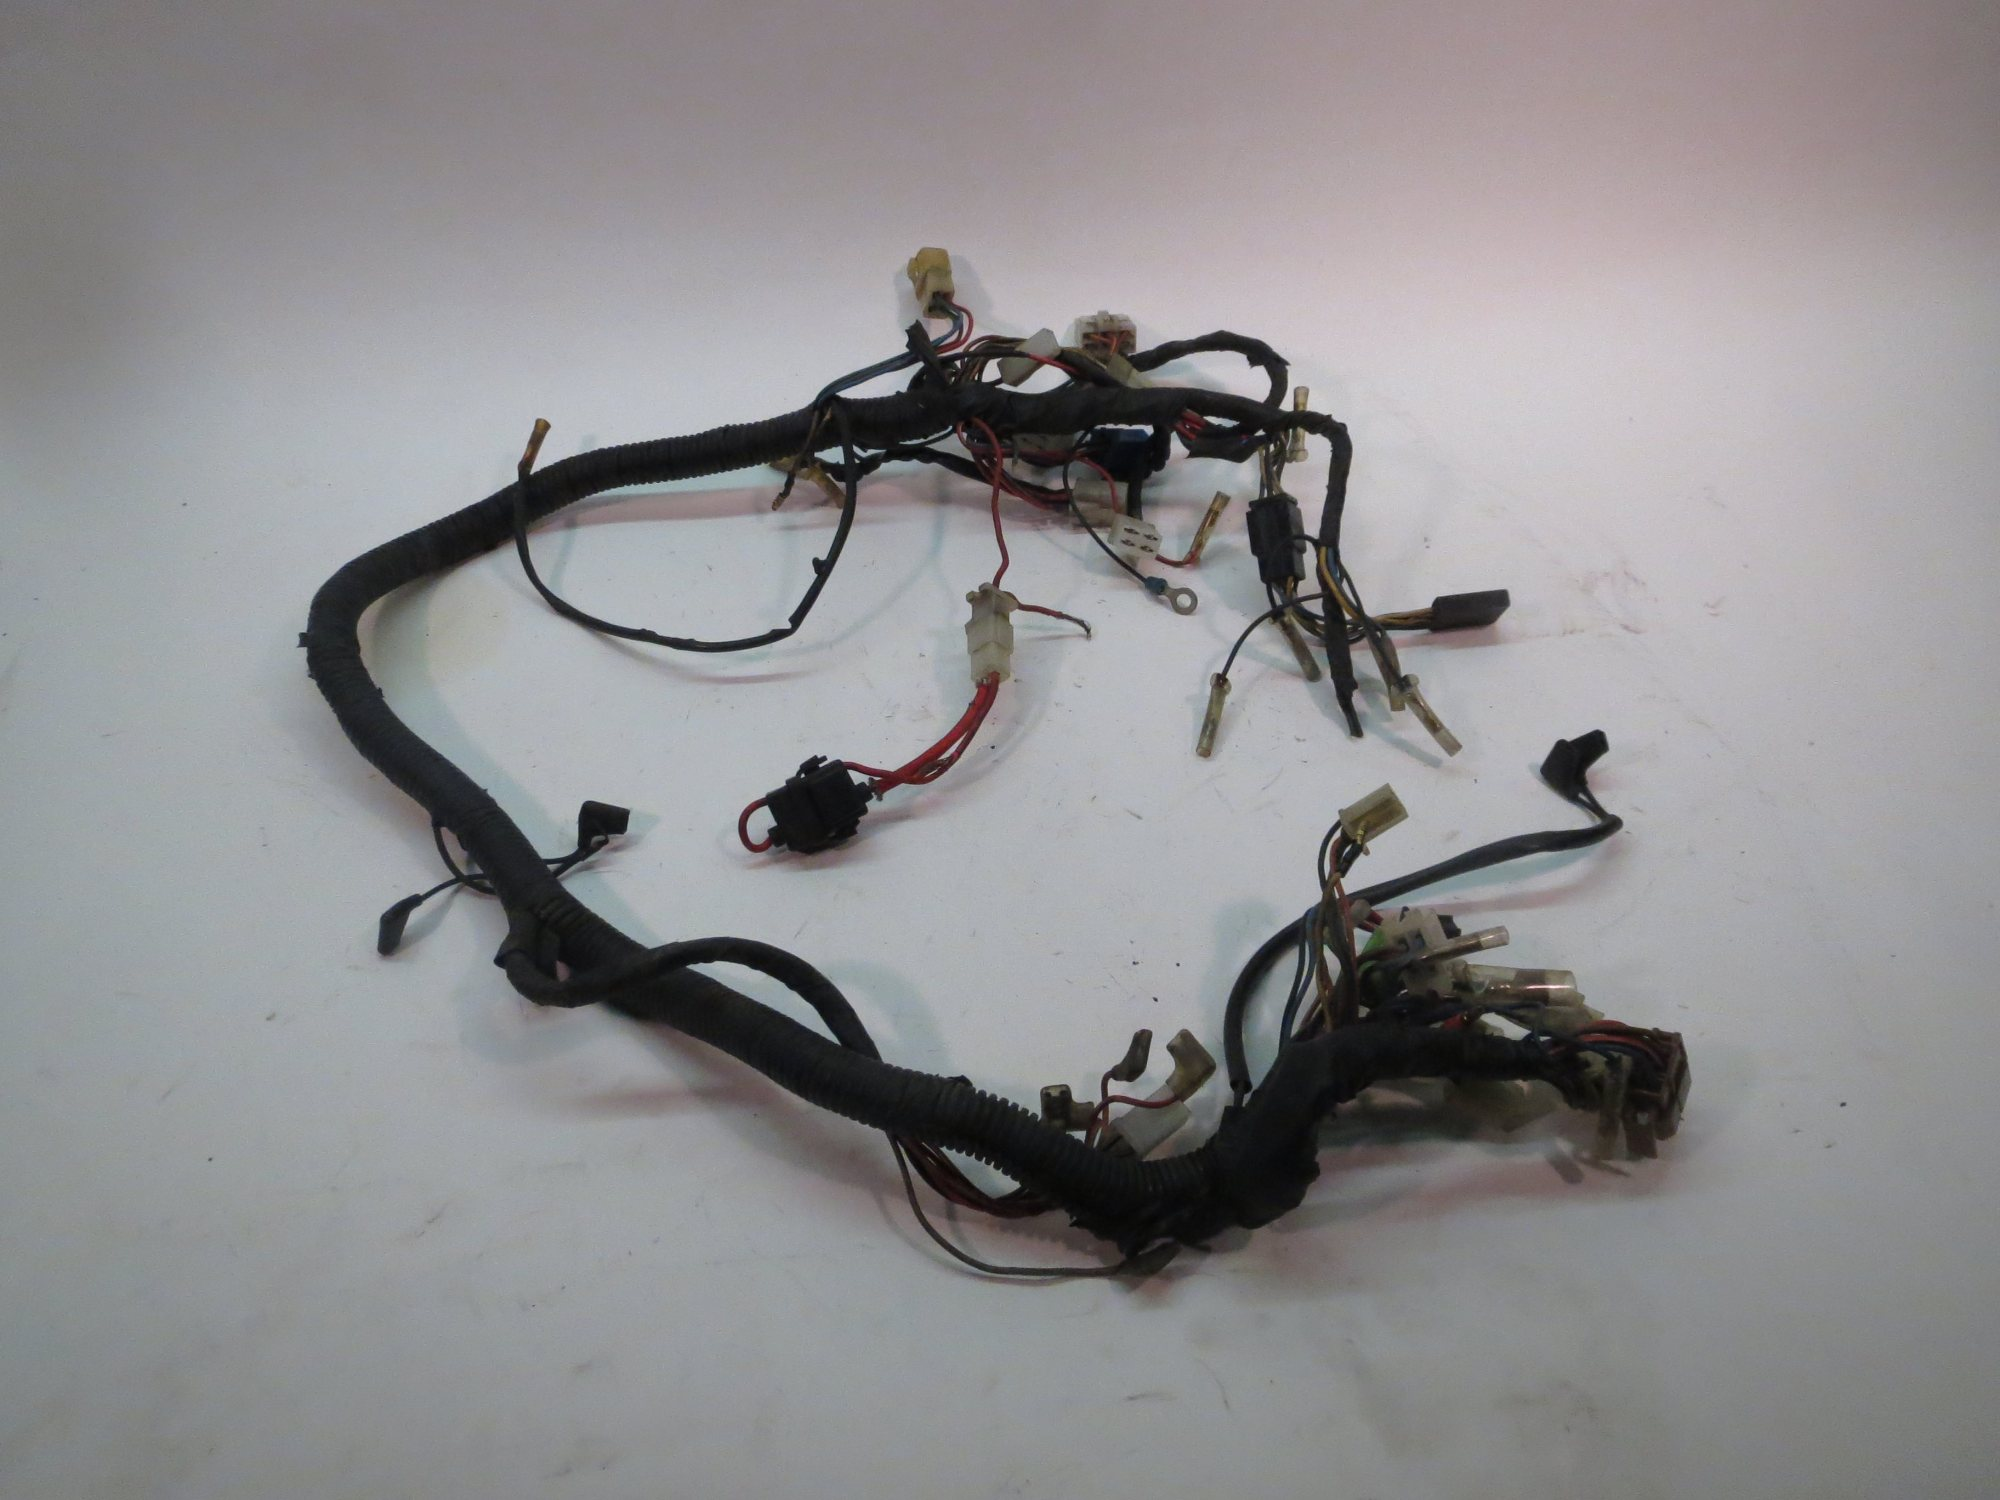 hight resolution of 1986 virago wiring harness wiring diagrams favorites 1986 virago wiring harness